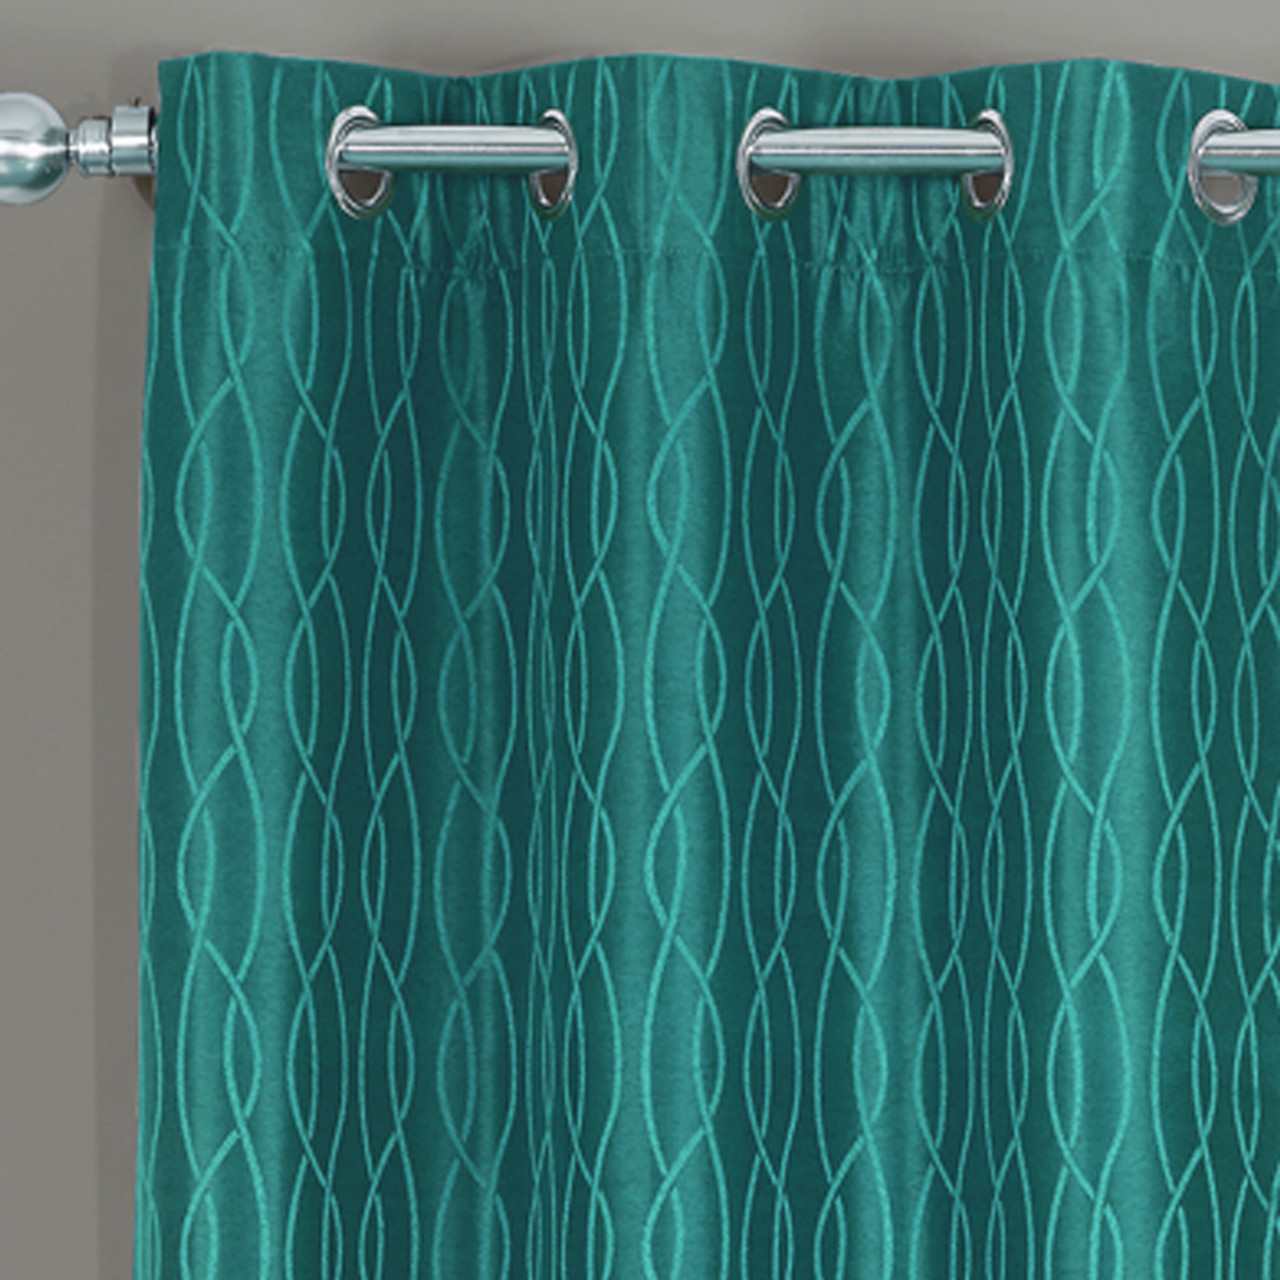 Teal Blackout Curtains Voyage Jacquard Thermal Blackout Grommets Curtain Panels Set Of 2 In 63 84 96 Or 108 Inch Long